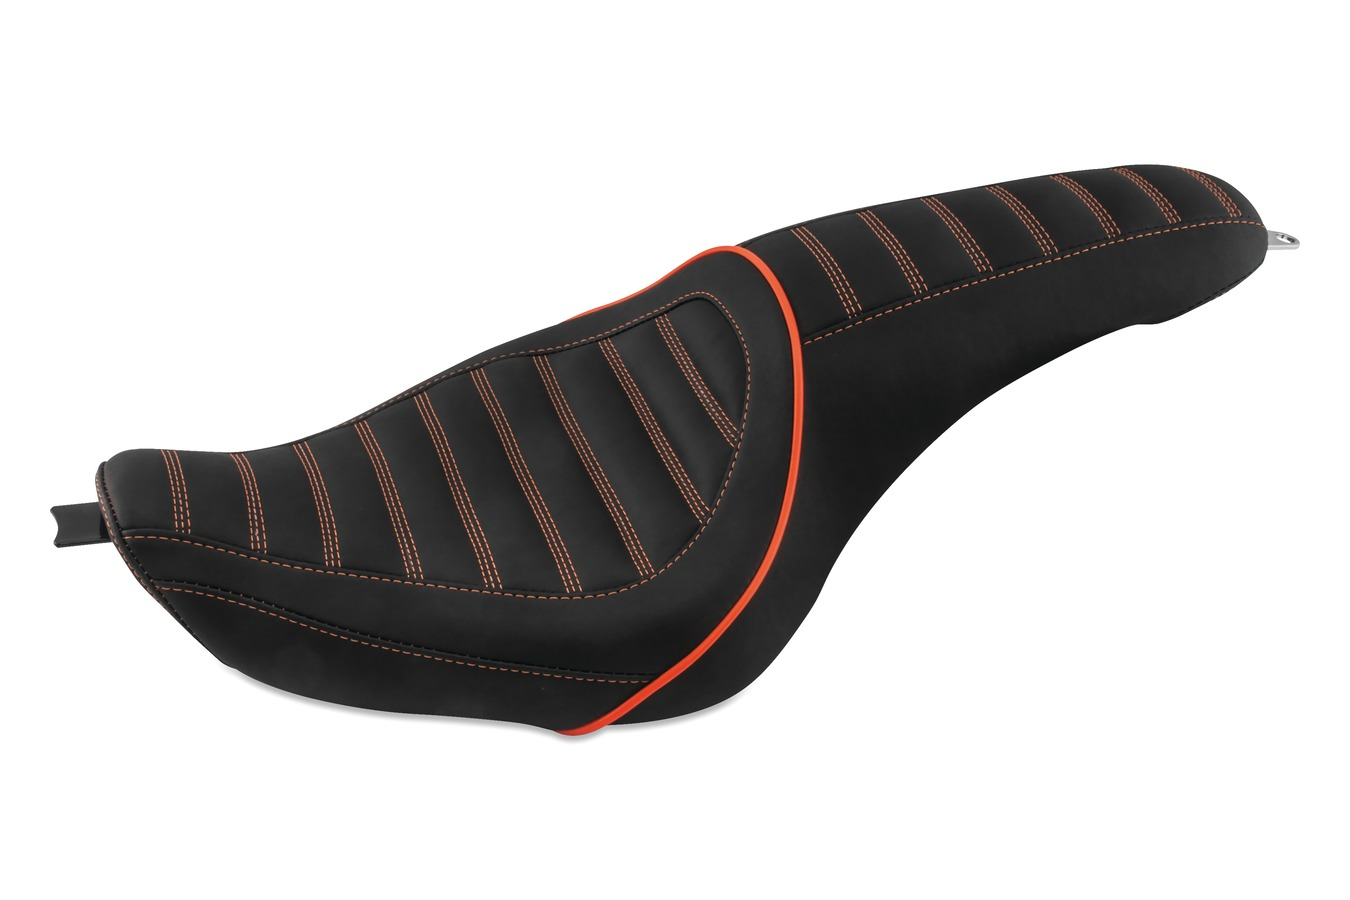 Revere Journey Stripe One-Piece Seat with Mandarin Orange Stitching, Black